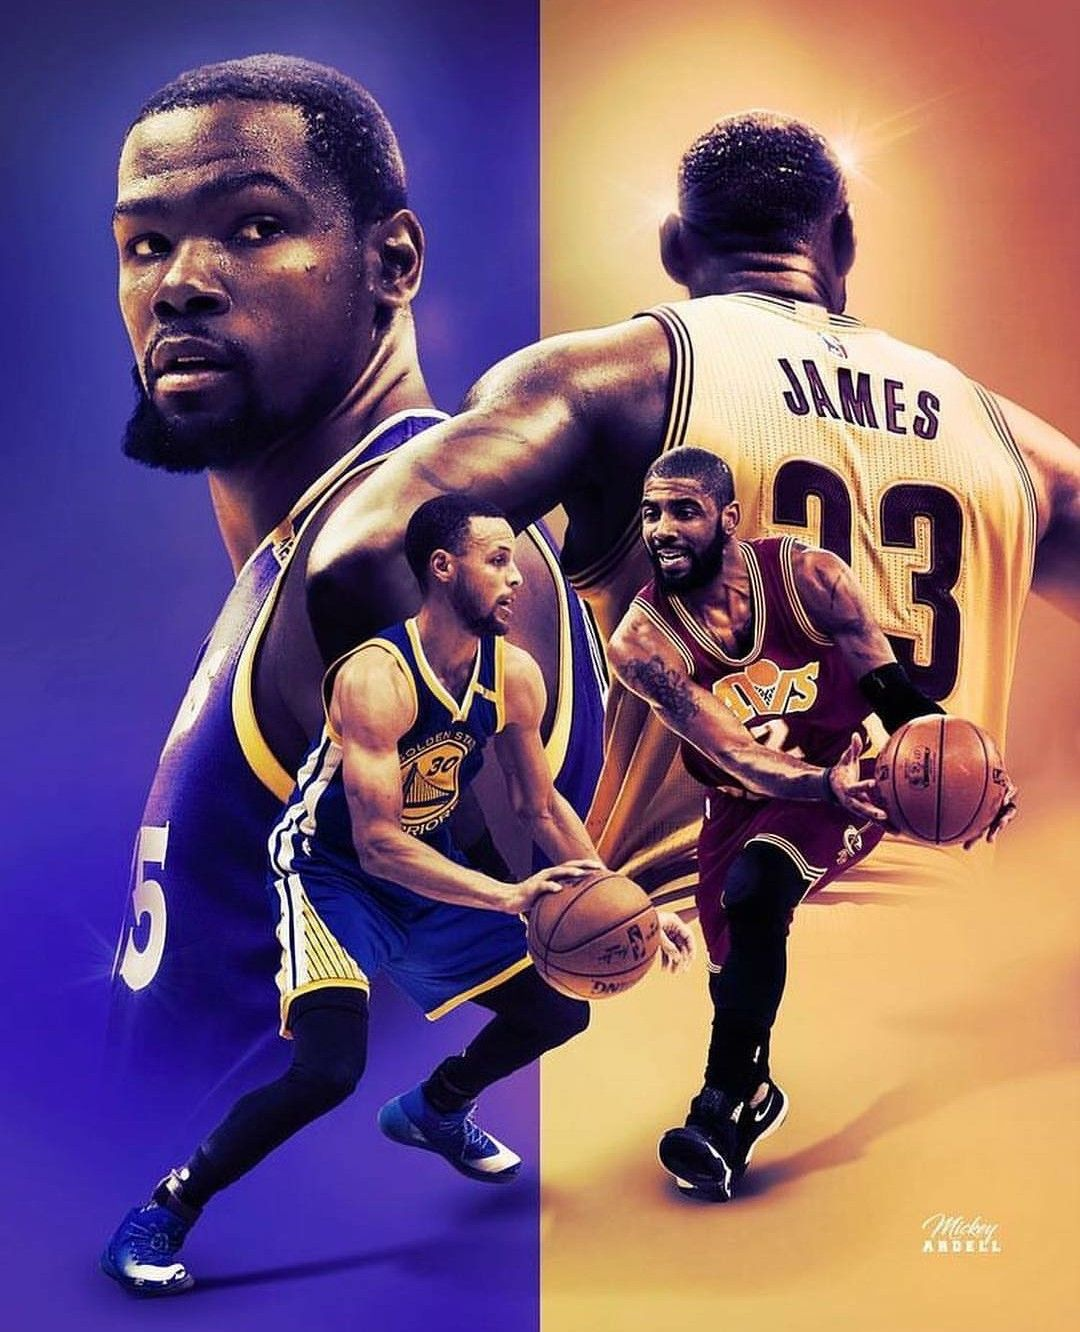 Kd And Kyrie Wallpaper : kyrie, wallpaper, Stephen, Curry, Kevin, Durant, Kyrie, Irving, Lebron, James, ❤️, Durant,, Basketball,